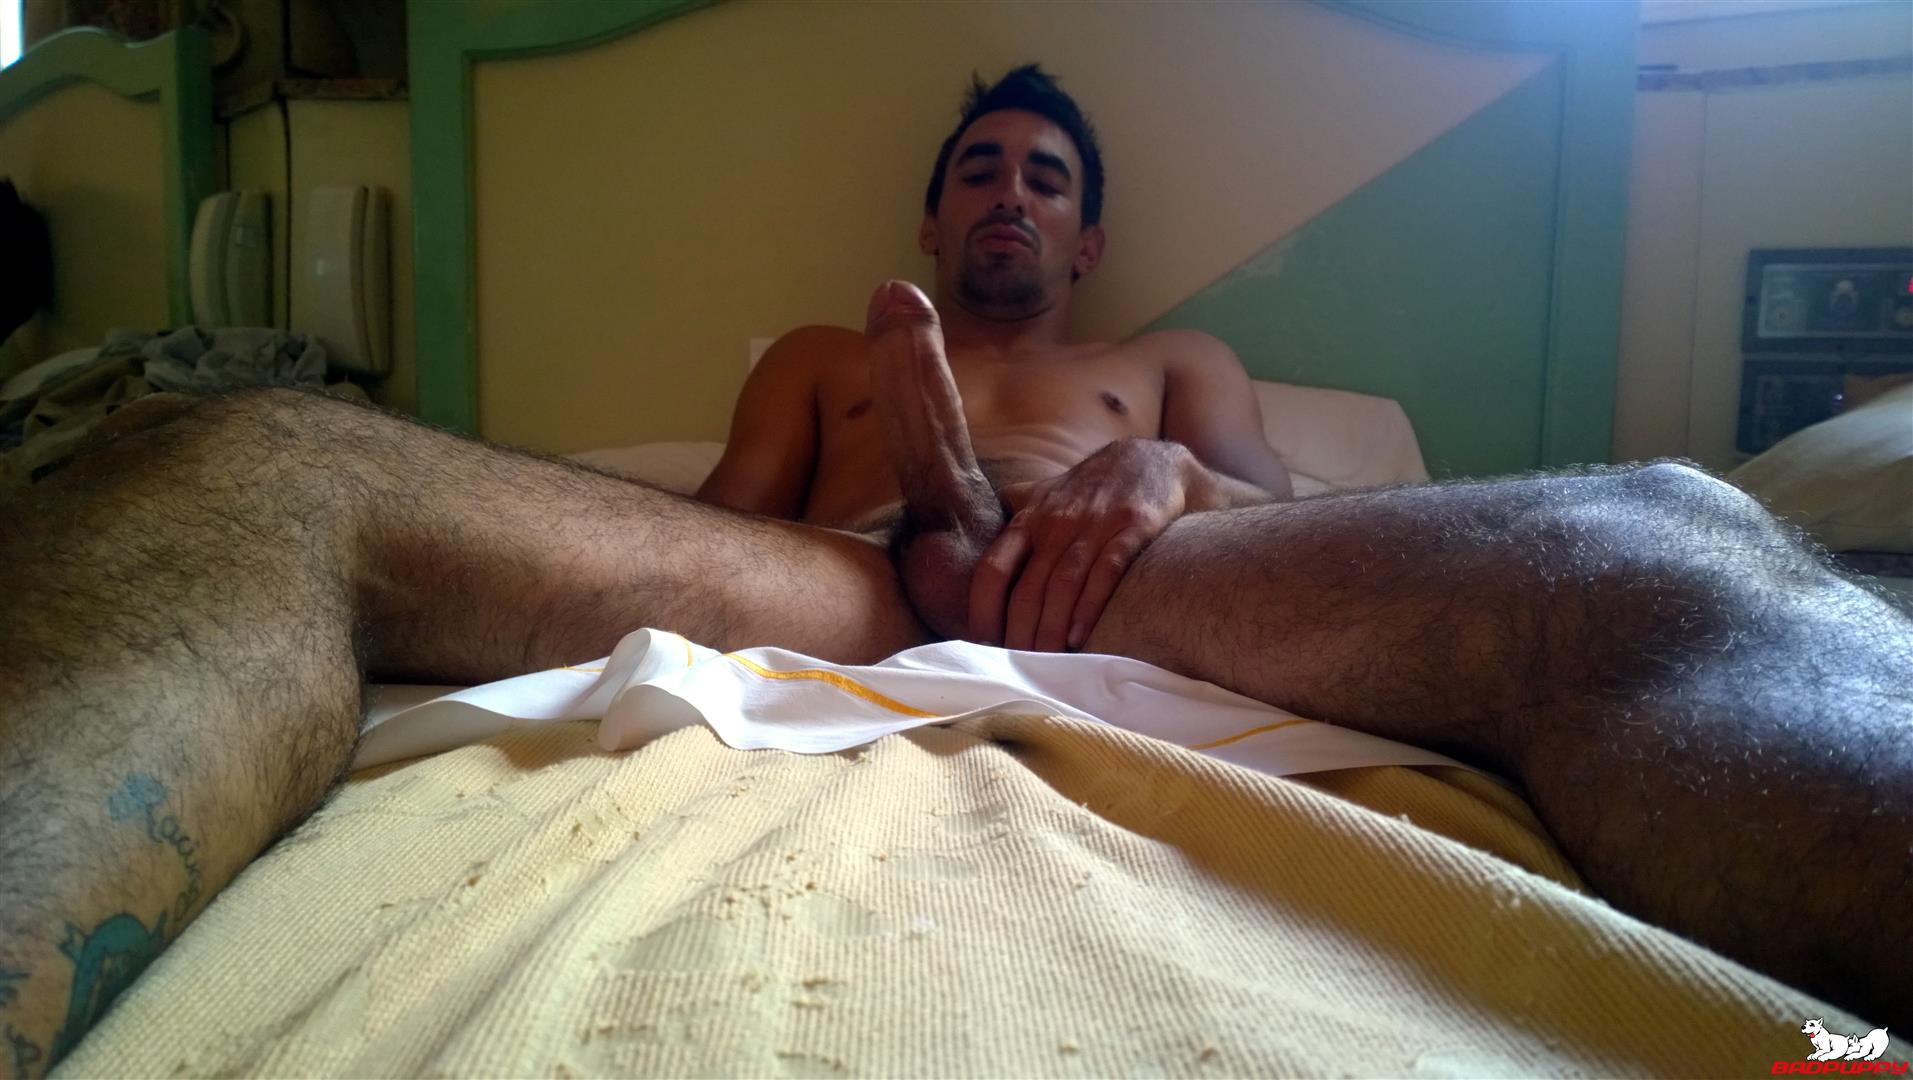 Badpuppy Fabian Flores Argentinian with a Big Uncut Cock 07 Argentinian Hunk With A Big Uncut Cock Auditions For Gay Porn